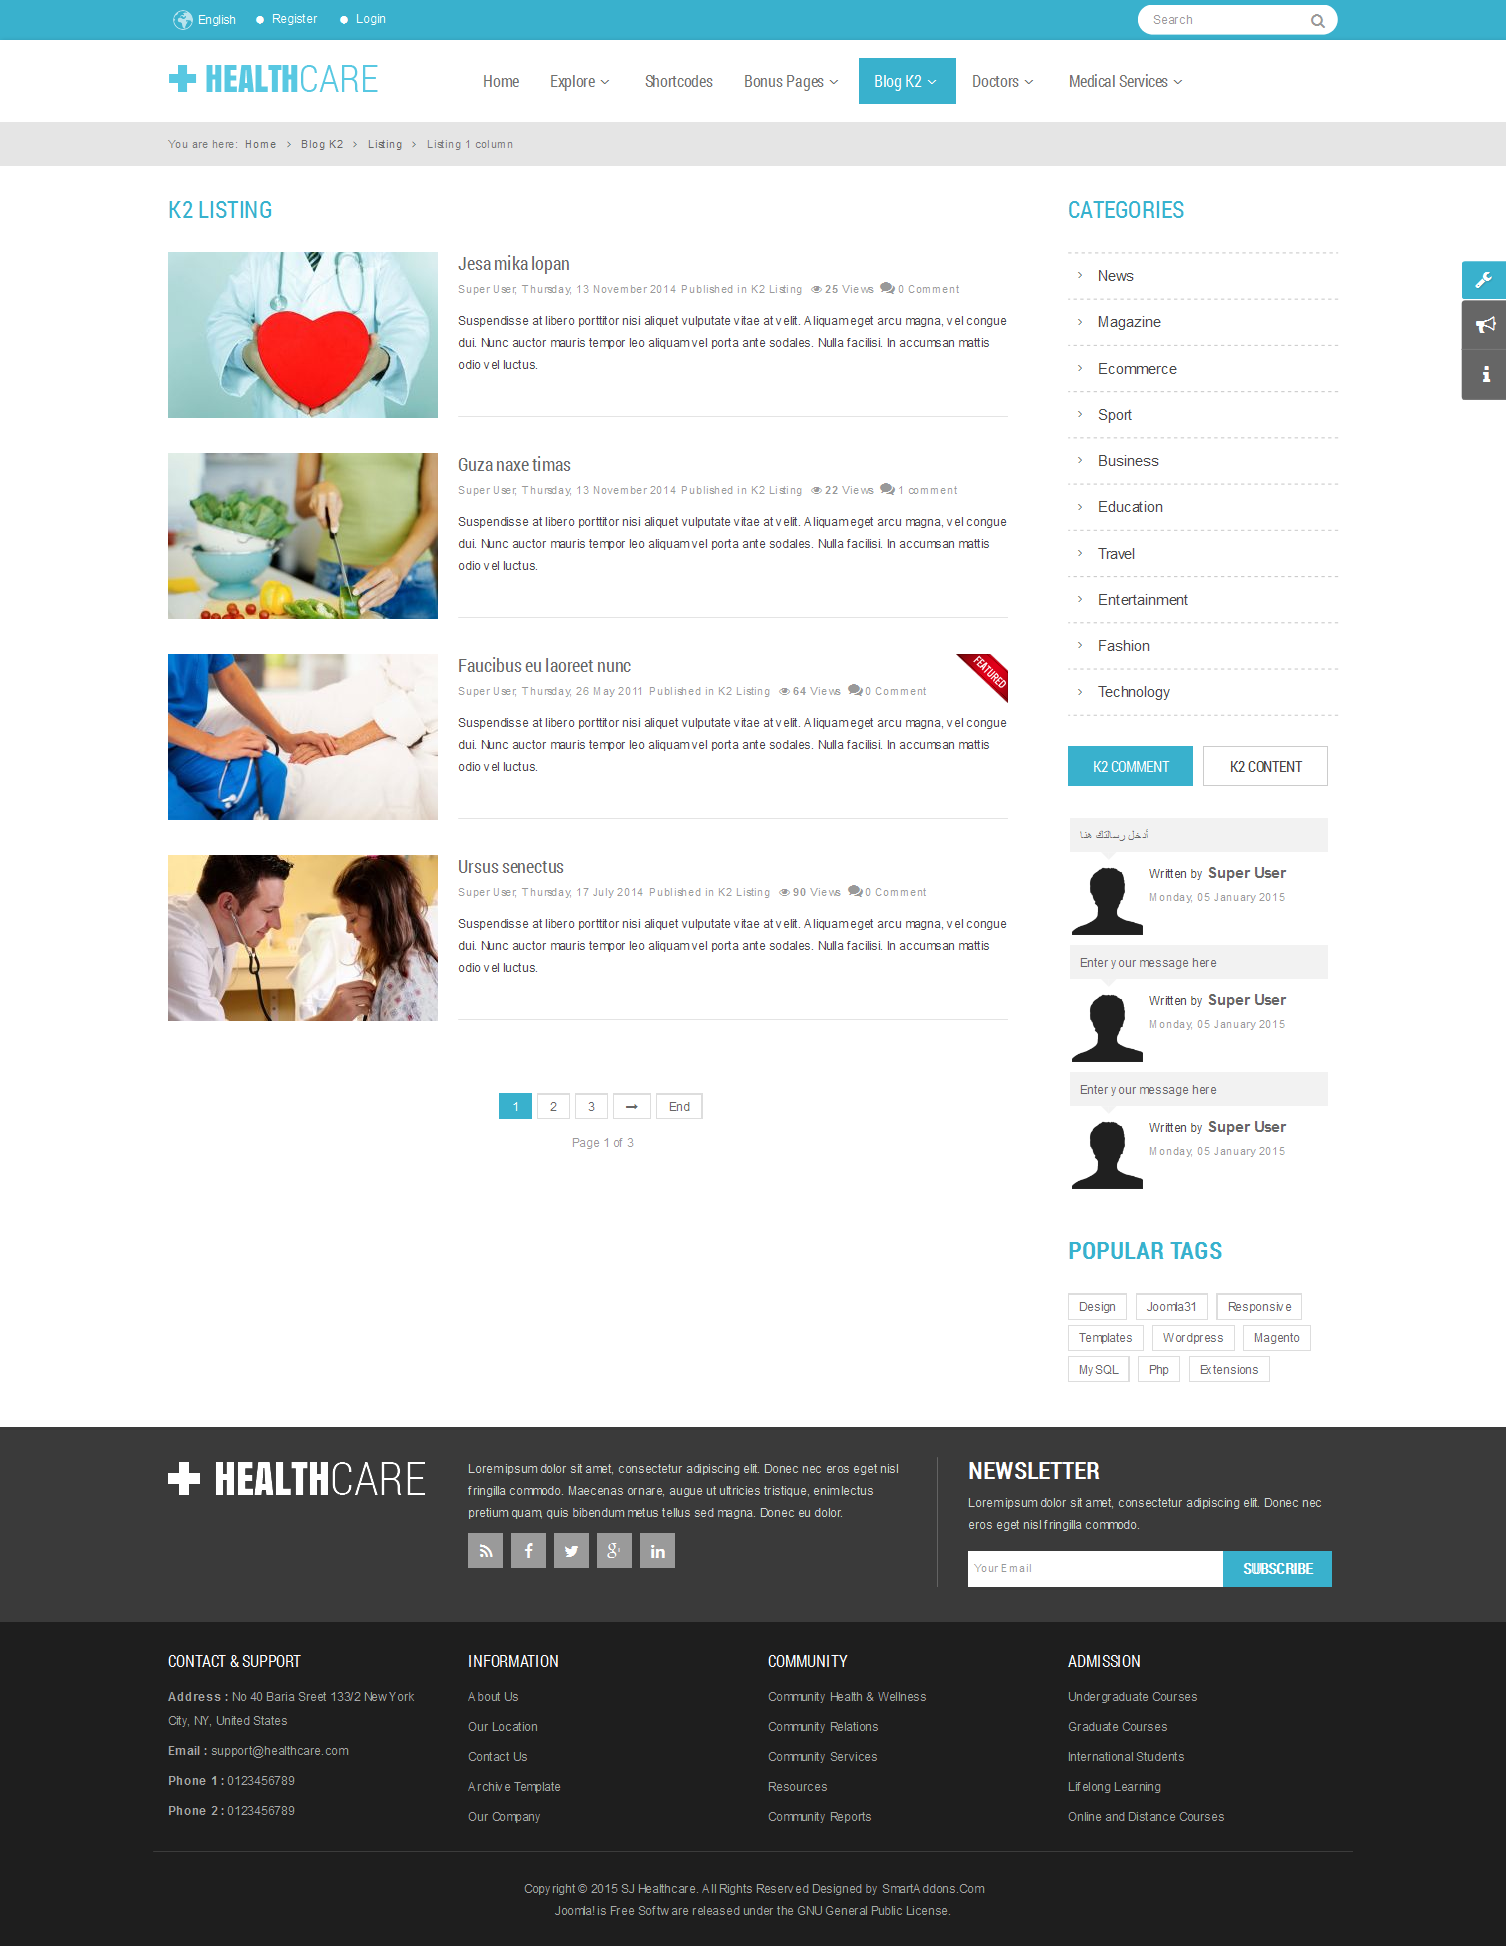 SJ Healthcare - Responsive Joomla Medical Health Template - 02_k2_listing.png